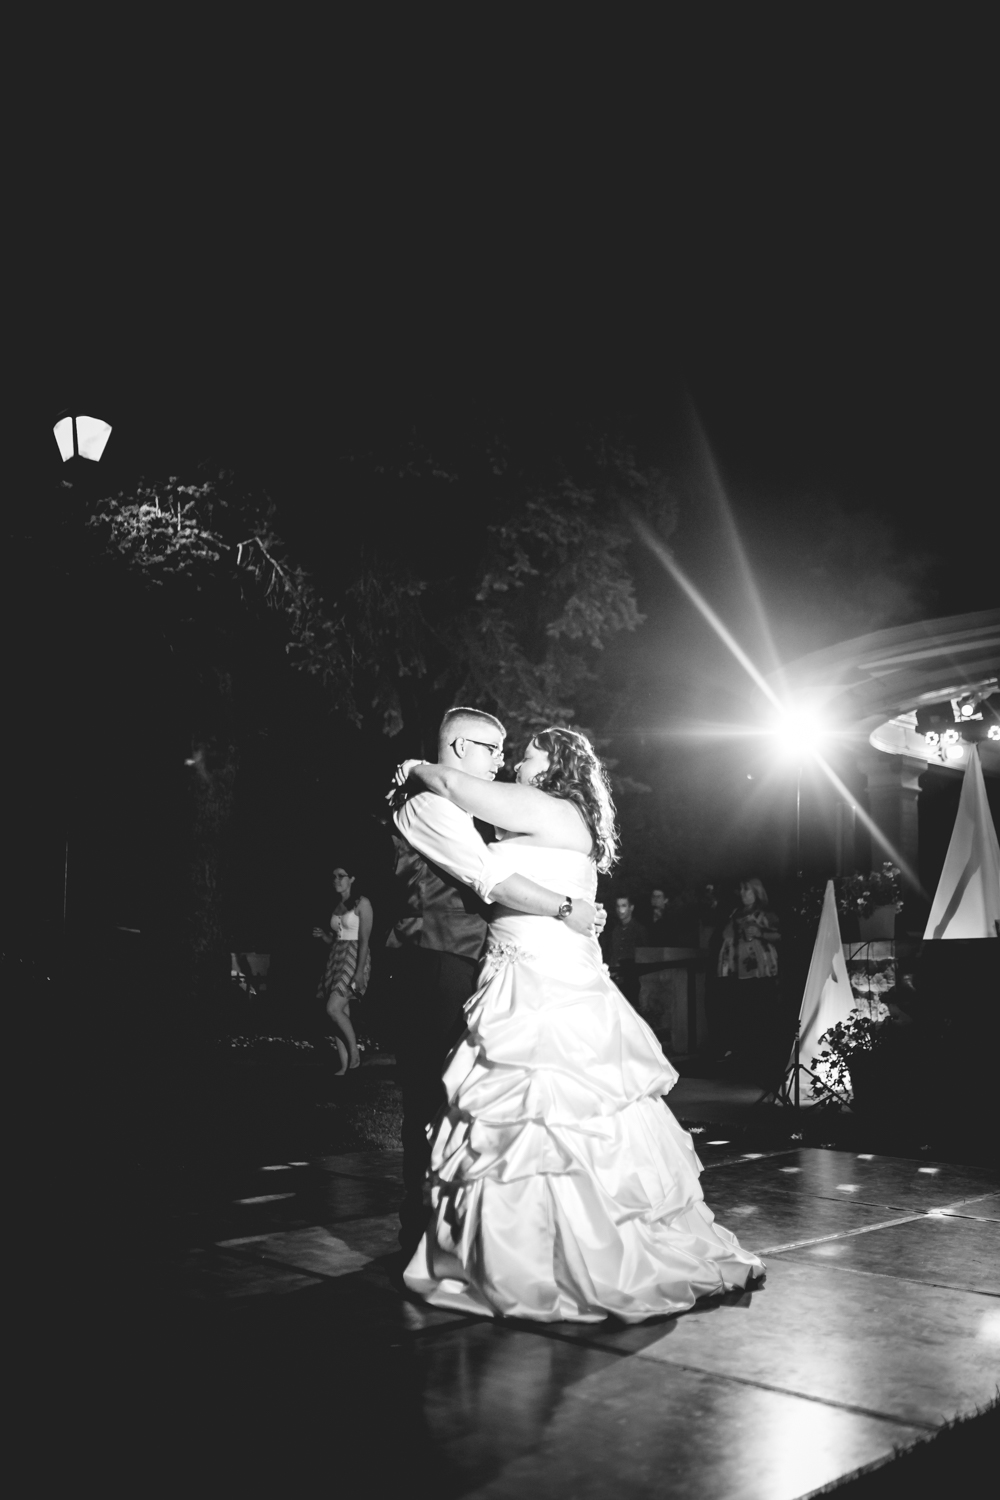 Bride and groom dancing in the dark.Photographed by JMGant Photography.